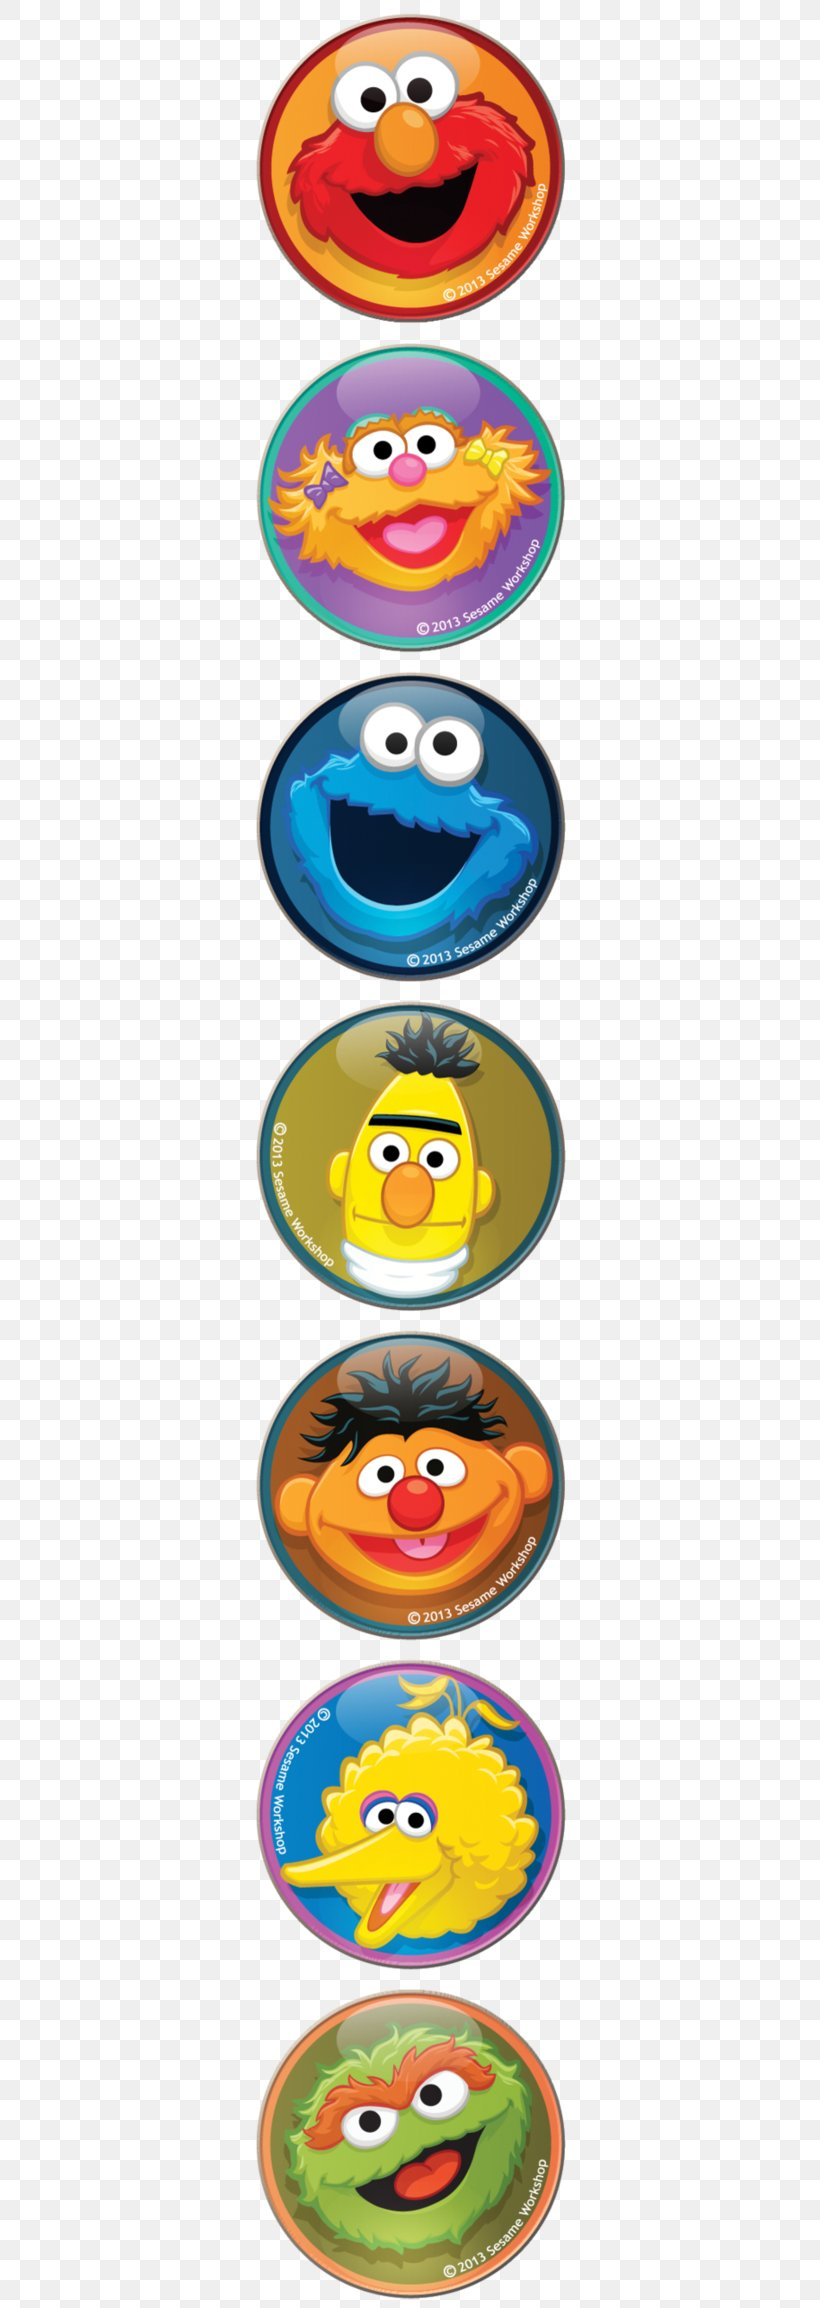 Cookie Monster Elmo Sesame Street Characters Oscar The